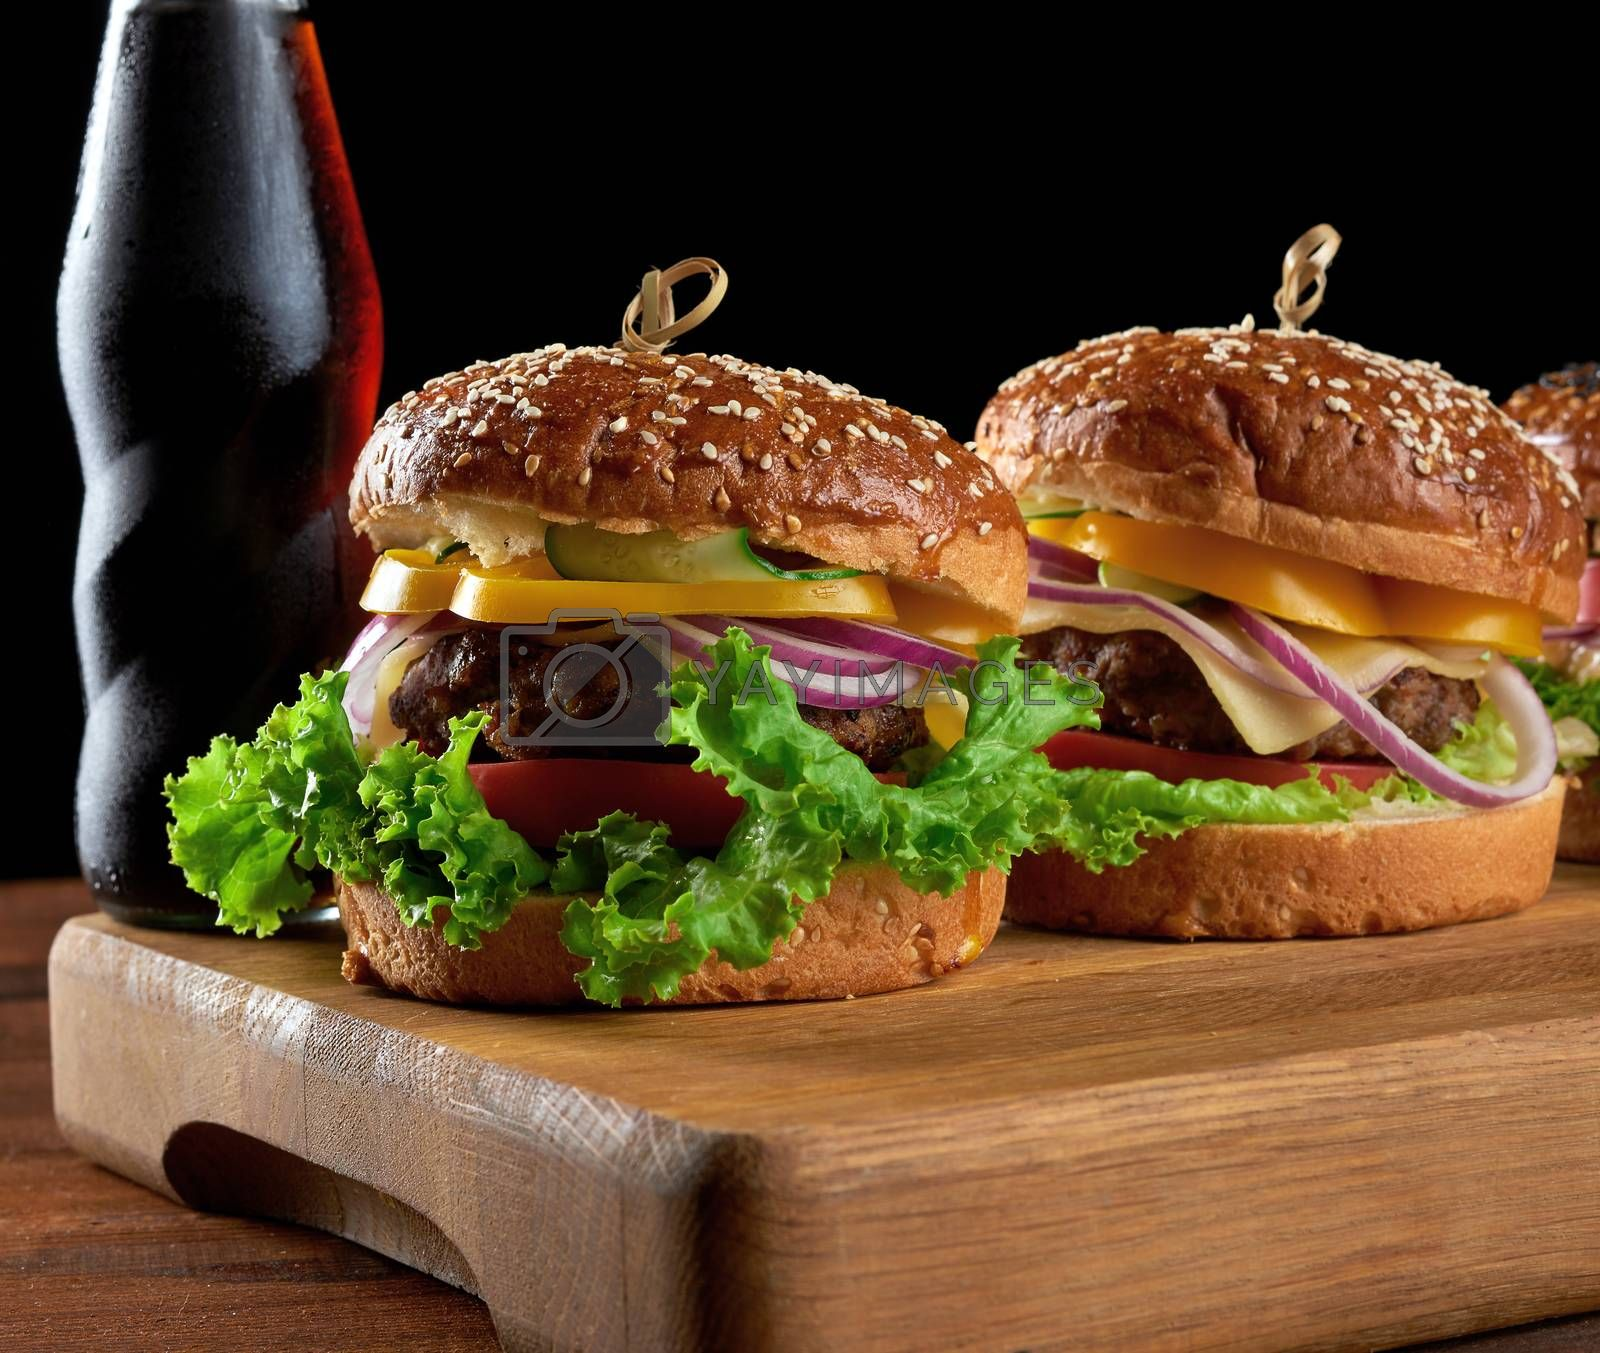 delicious burgers with fried beef cutlet, tomato, lettuce and onions, crispy white wheat flour bun with sesame seeds. Fast food on a wooden board, behind a bottle with a drink